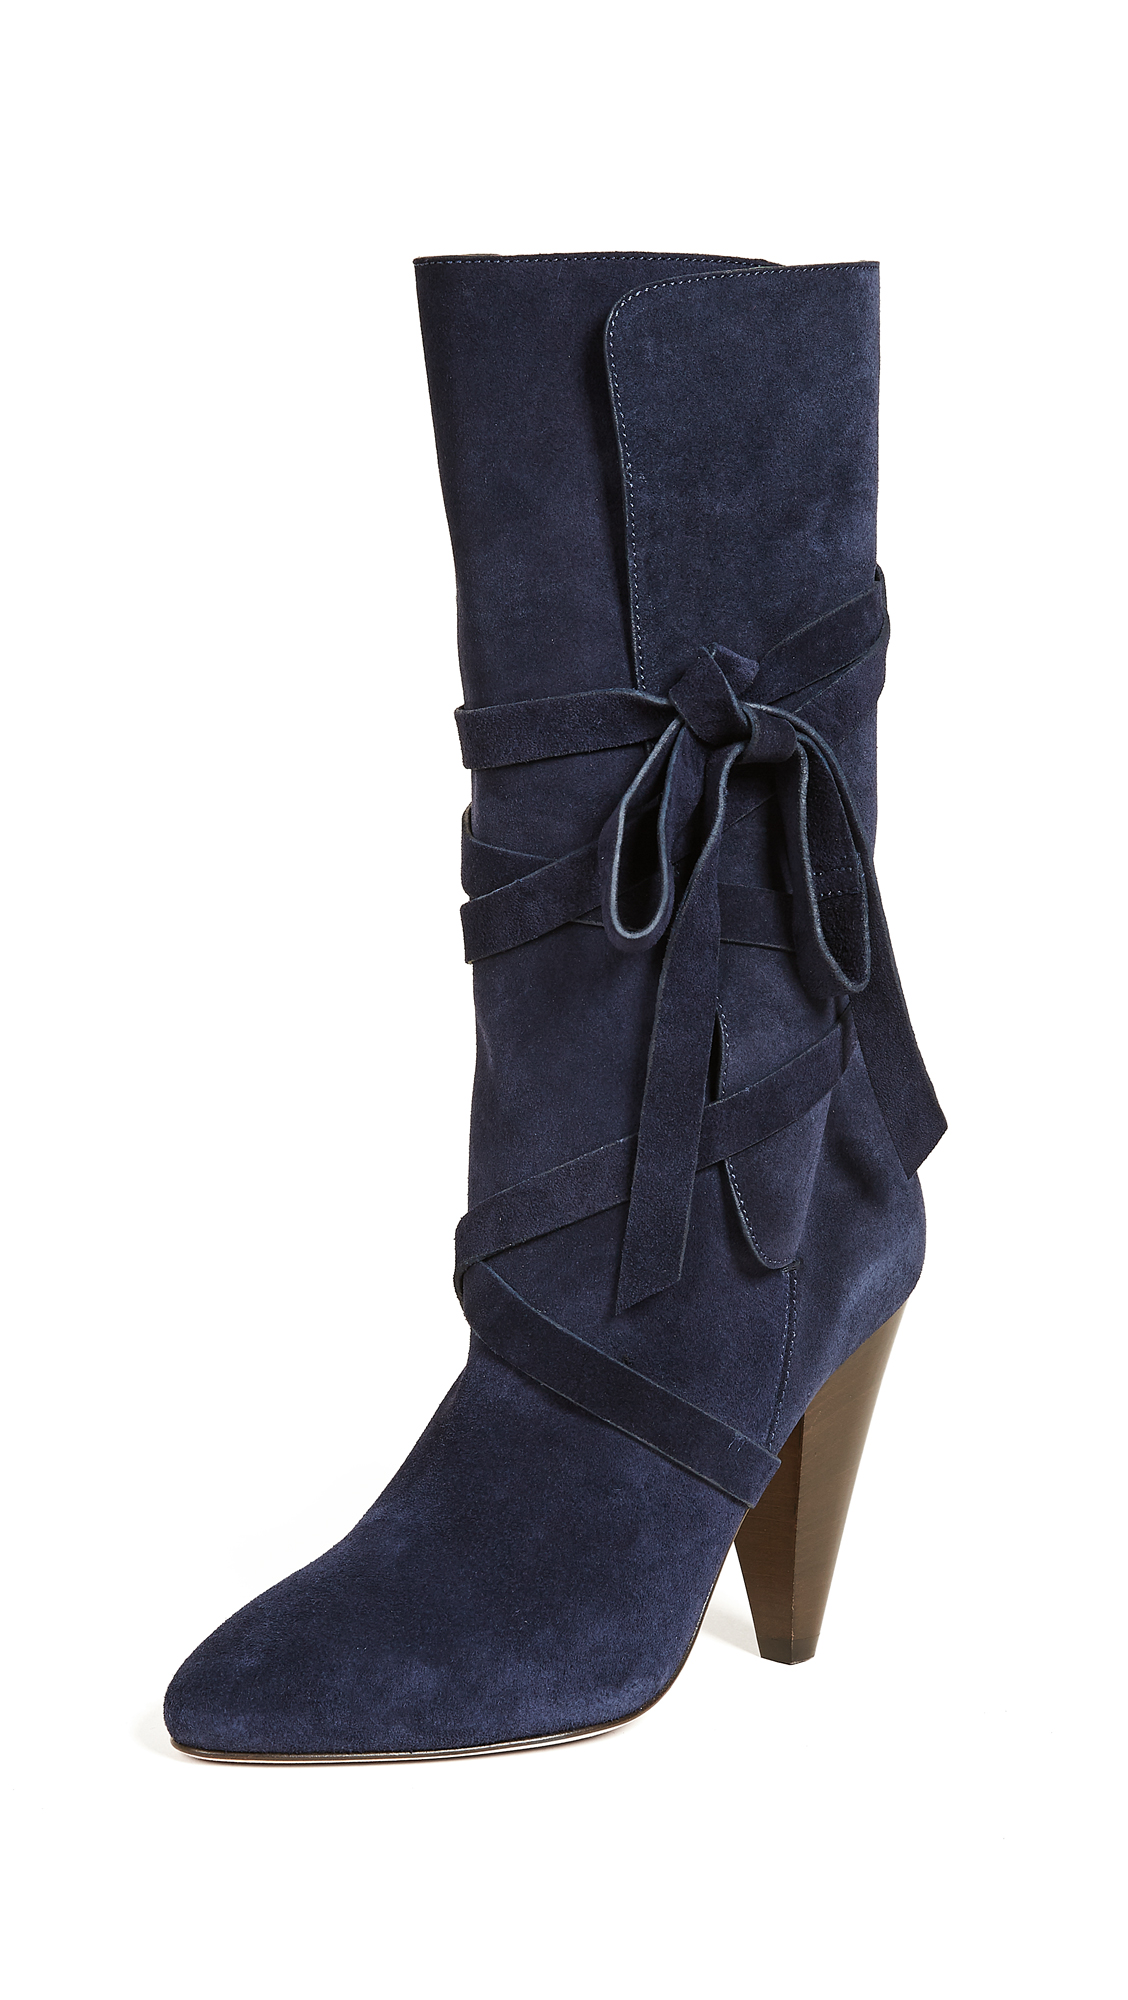 Veronica Beard Hall Heel Boots - Navy